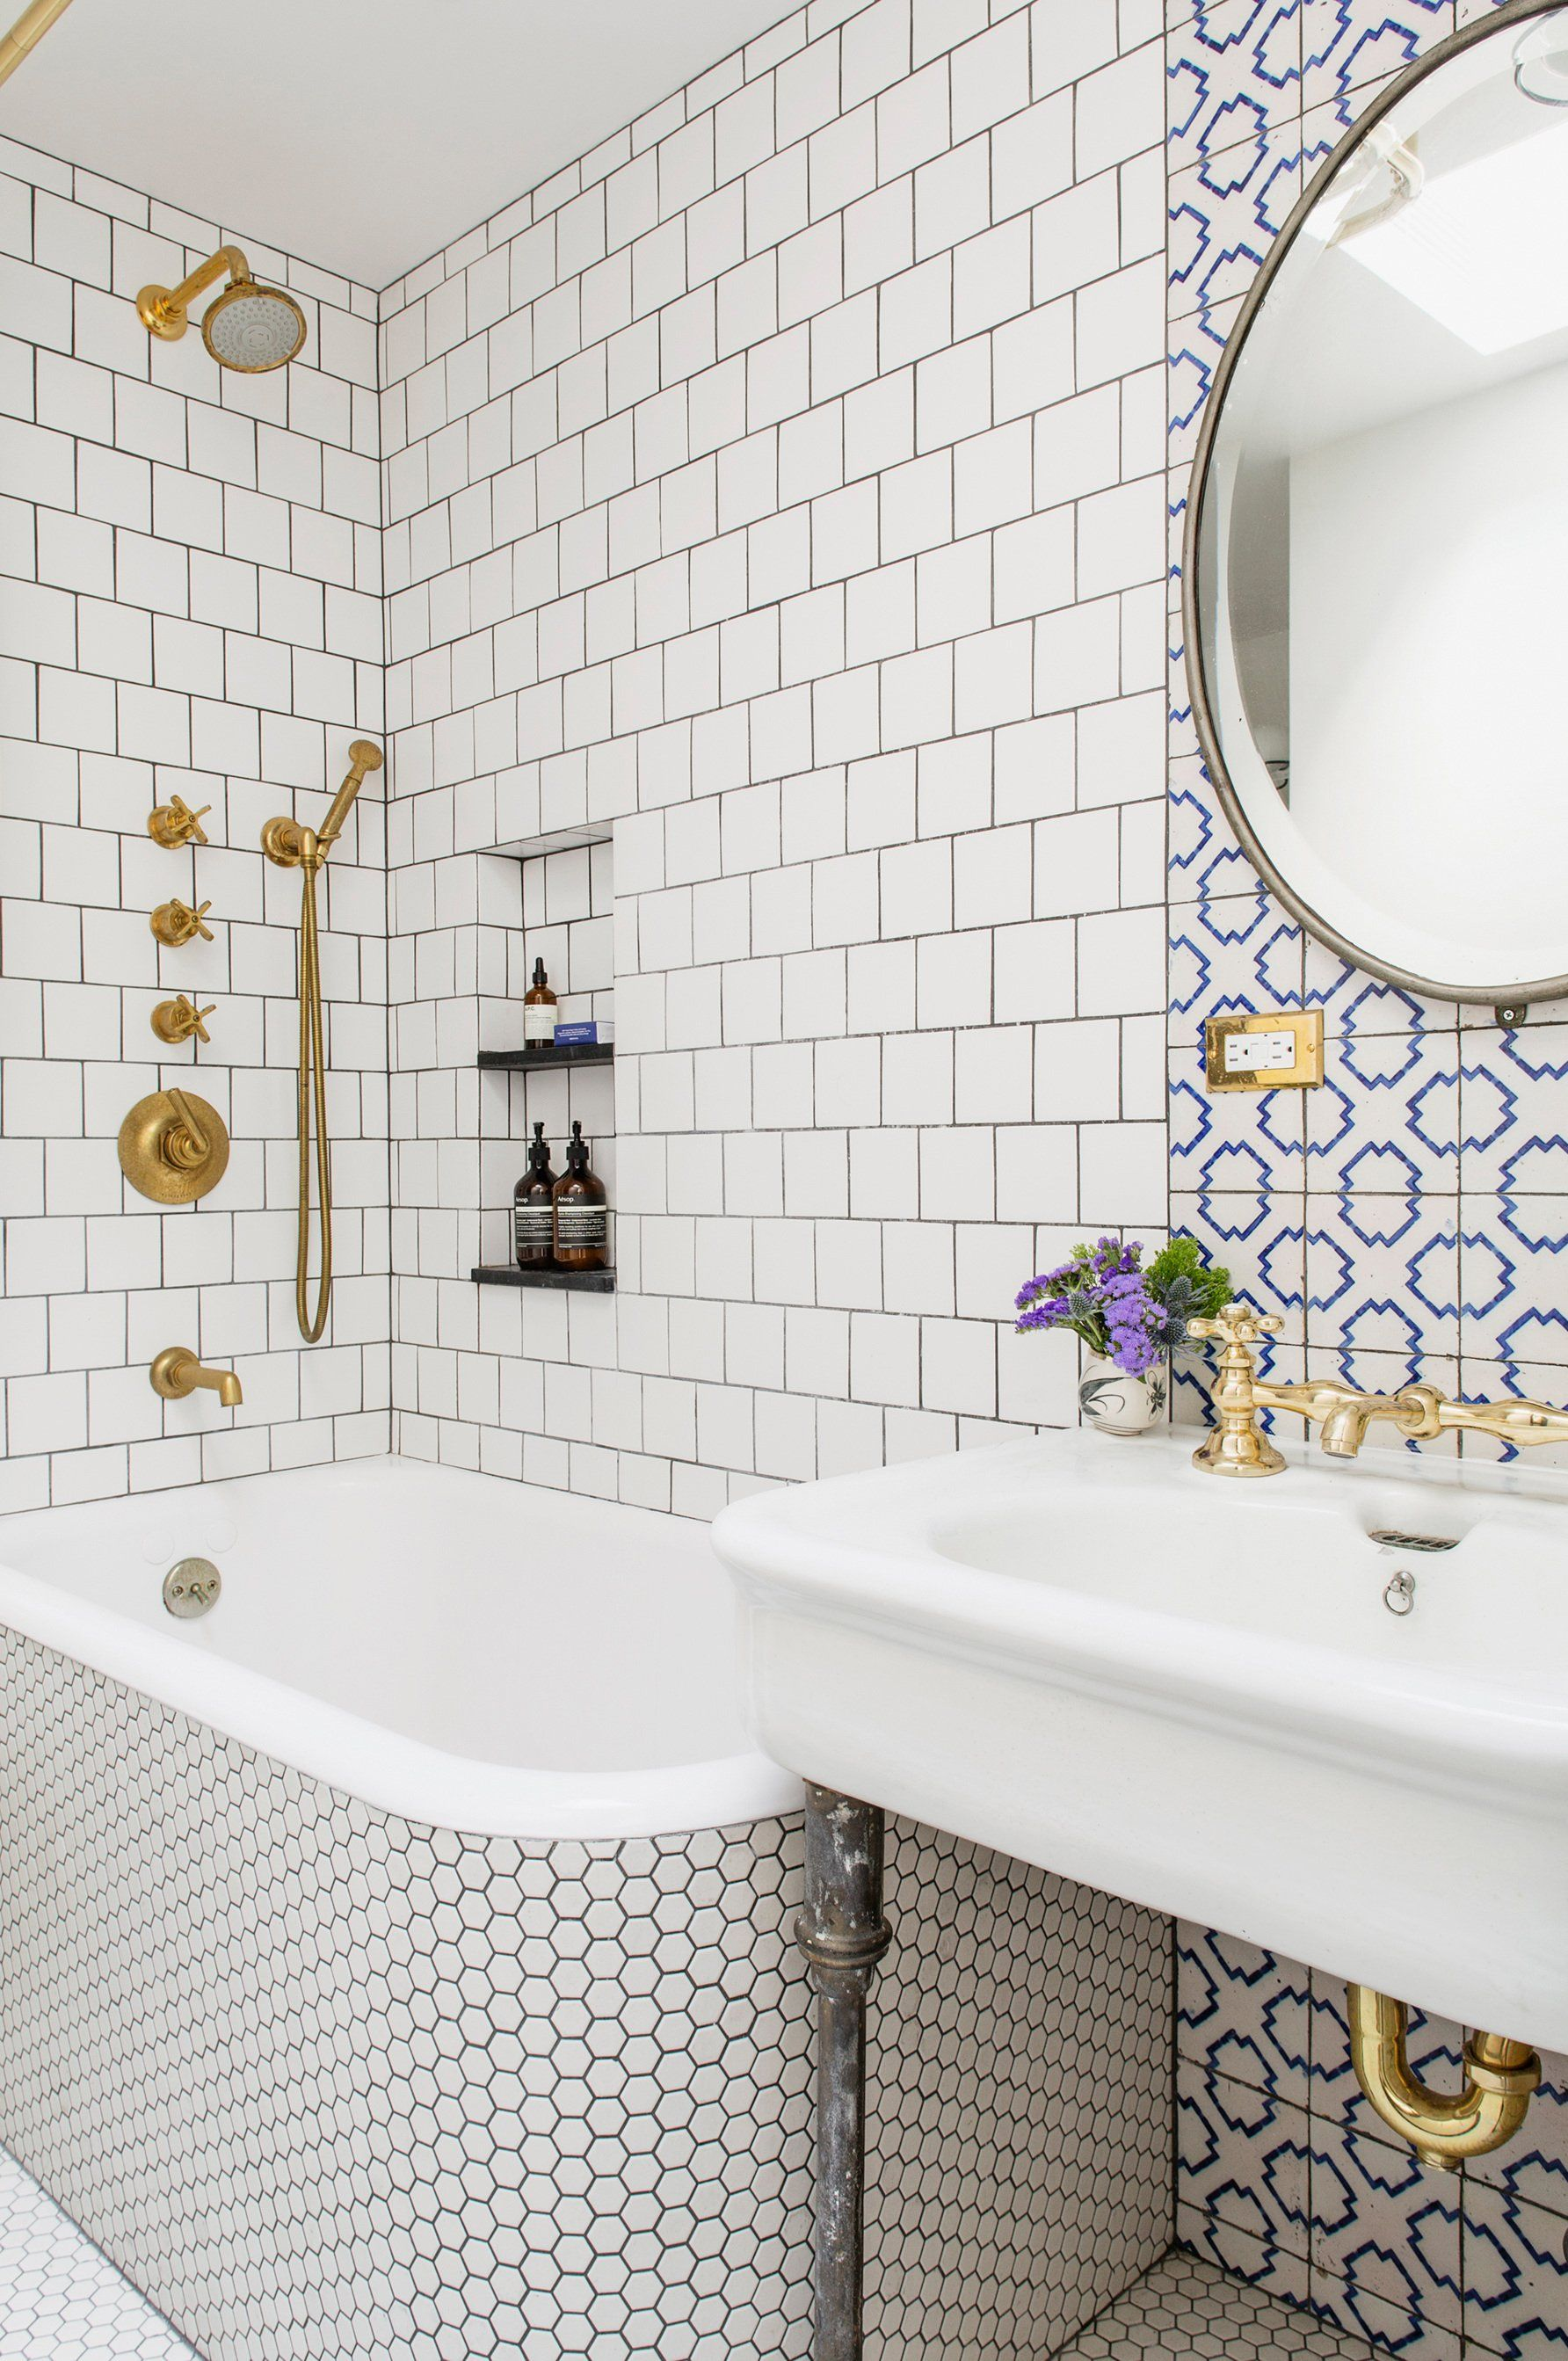 Stylish Remodeling Ideas for Small Bathrooms | Small bathroom, Walls ...